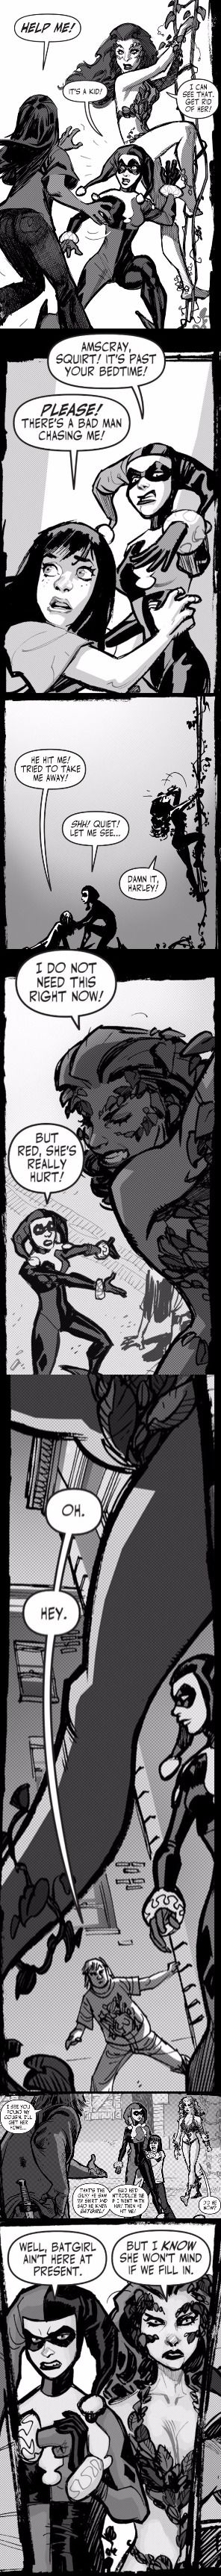 Harley and Ivy to the rescue. Batman: Black and White #3.